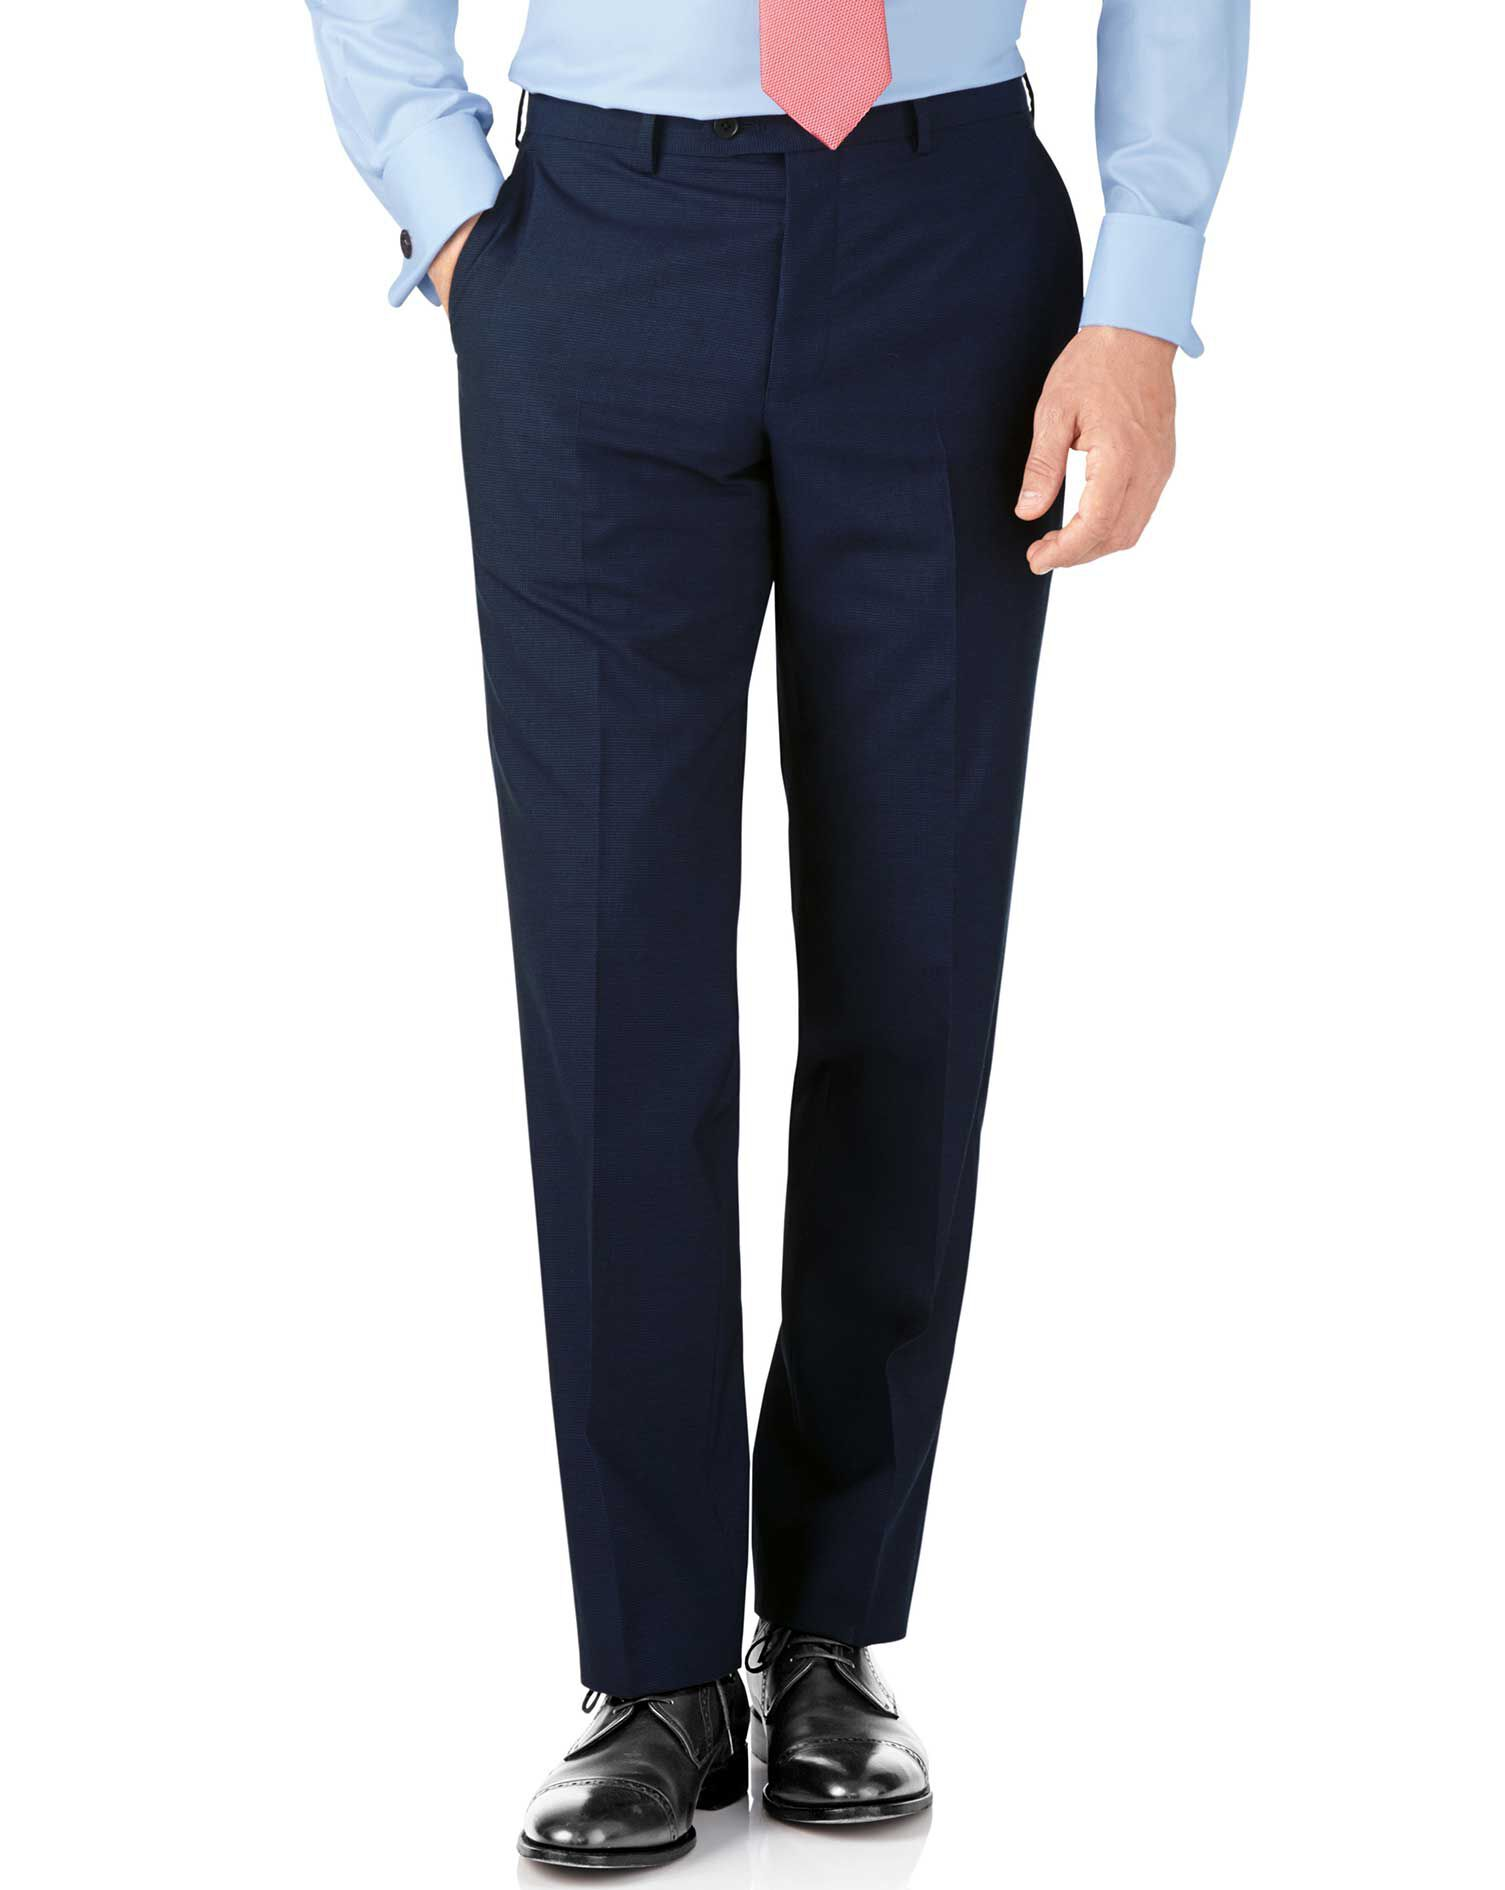 Indigo Blue Puppytooth Classic Fit Panama Business Suit Trouser Size W40 L32 by Charles Tyrwhitt